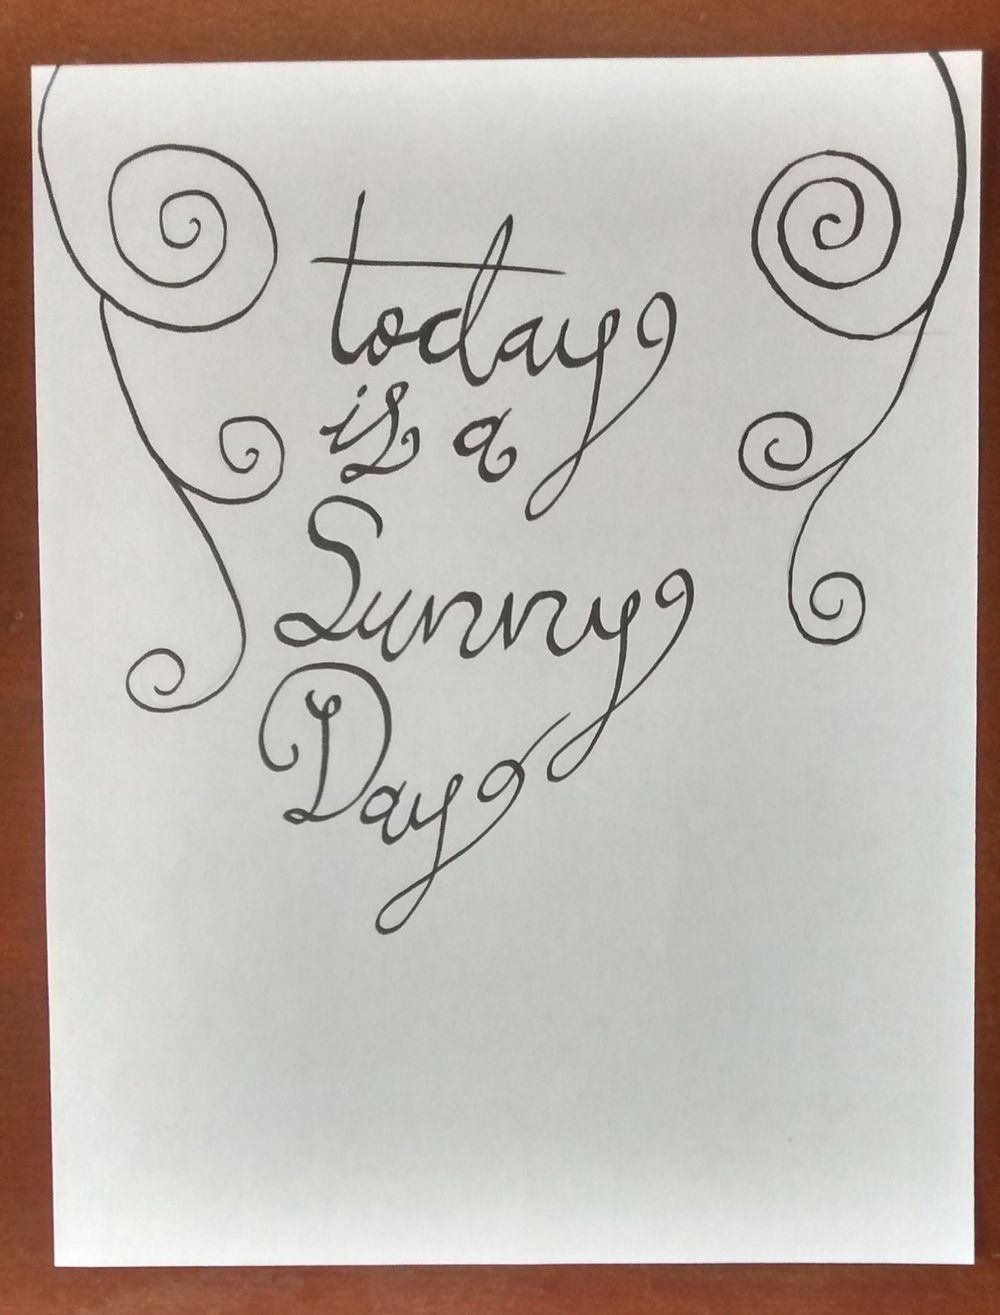 Sunny Day - image 2 - student project